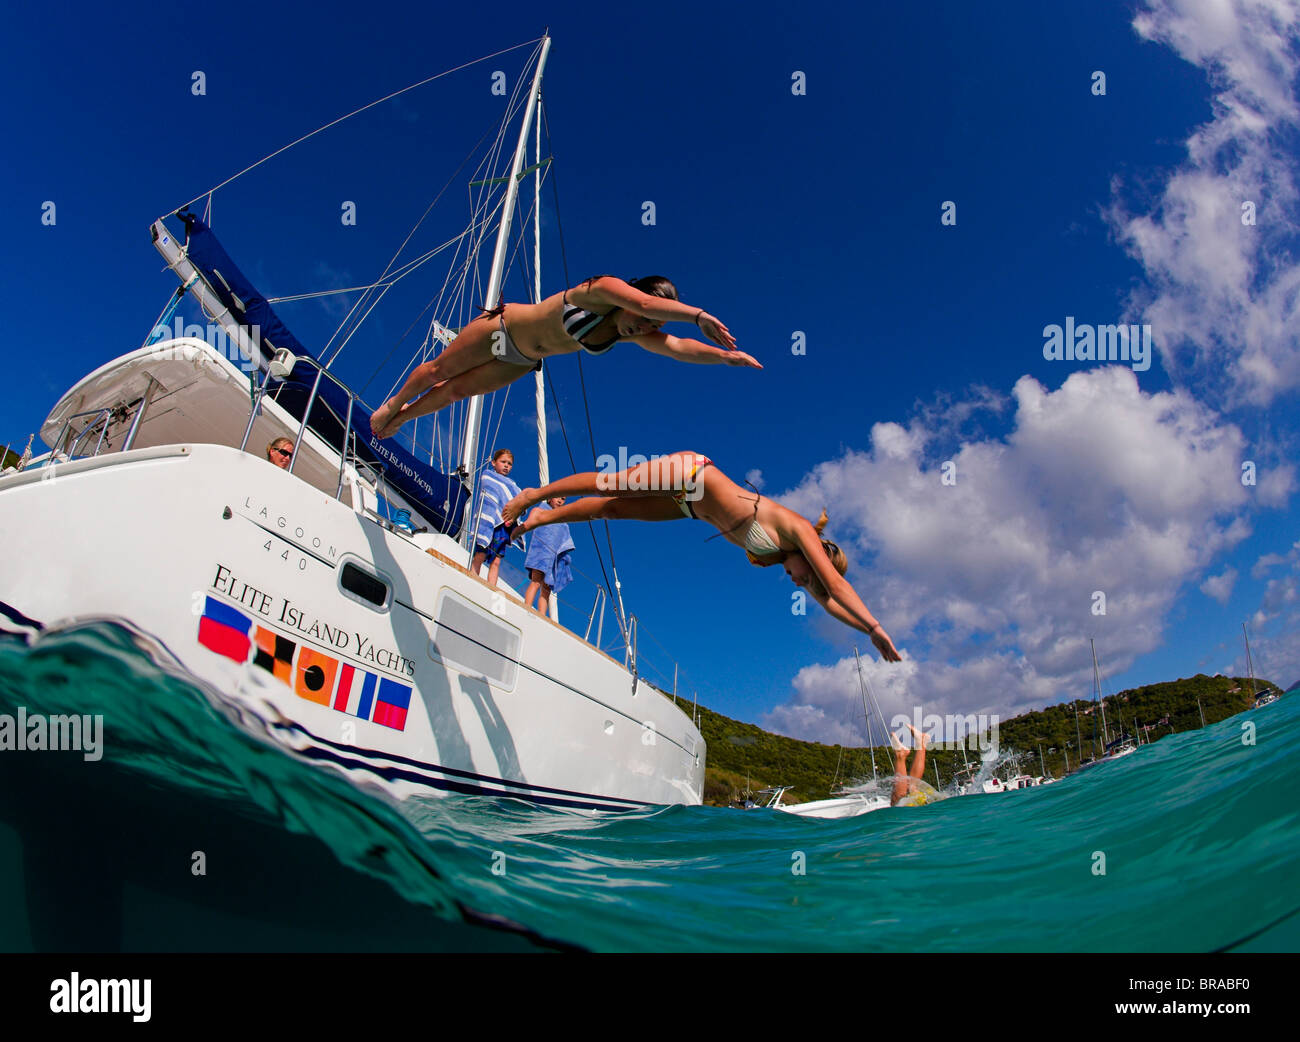 Two girls diving from a catamaran into the sea, British Virgin Islands, Caribbean, December, 2006 - Stock Image